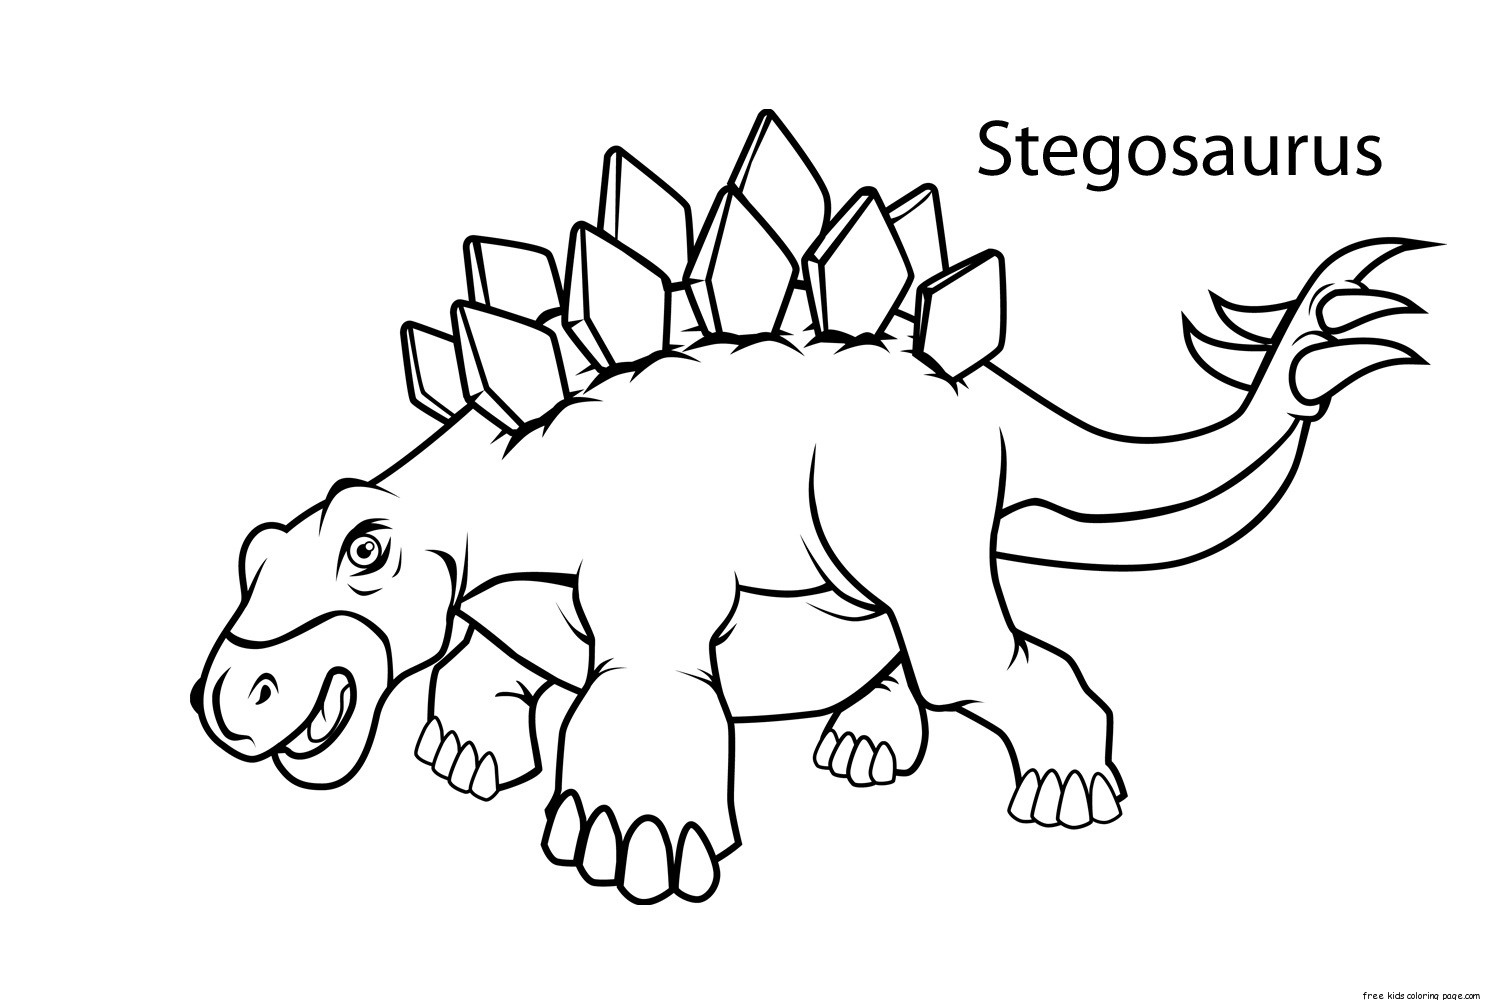 1500x1000 printable dinosaur coloring pages new dinosaur coloring pages